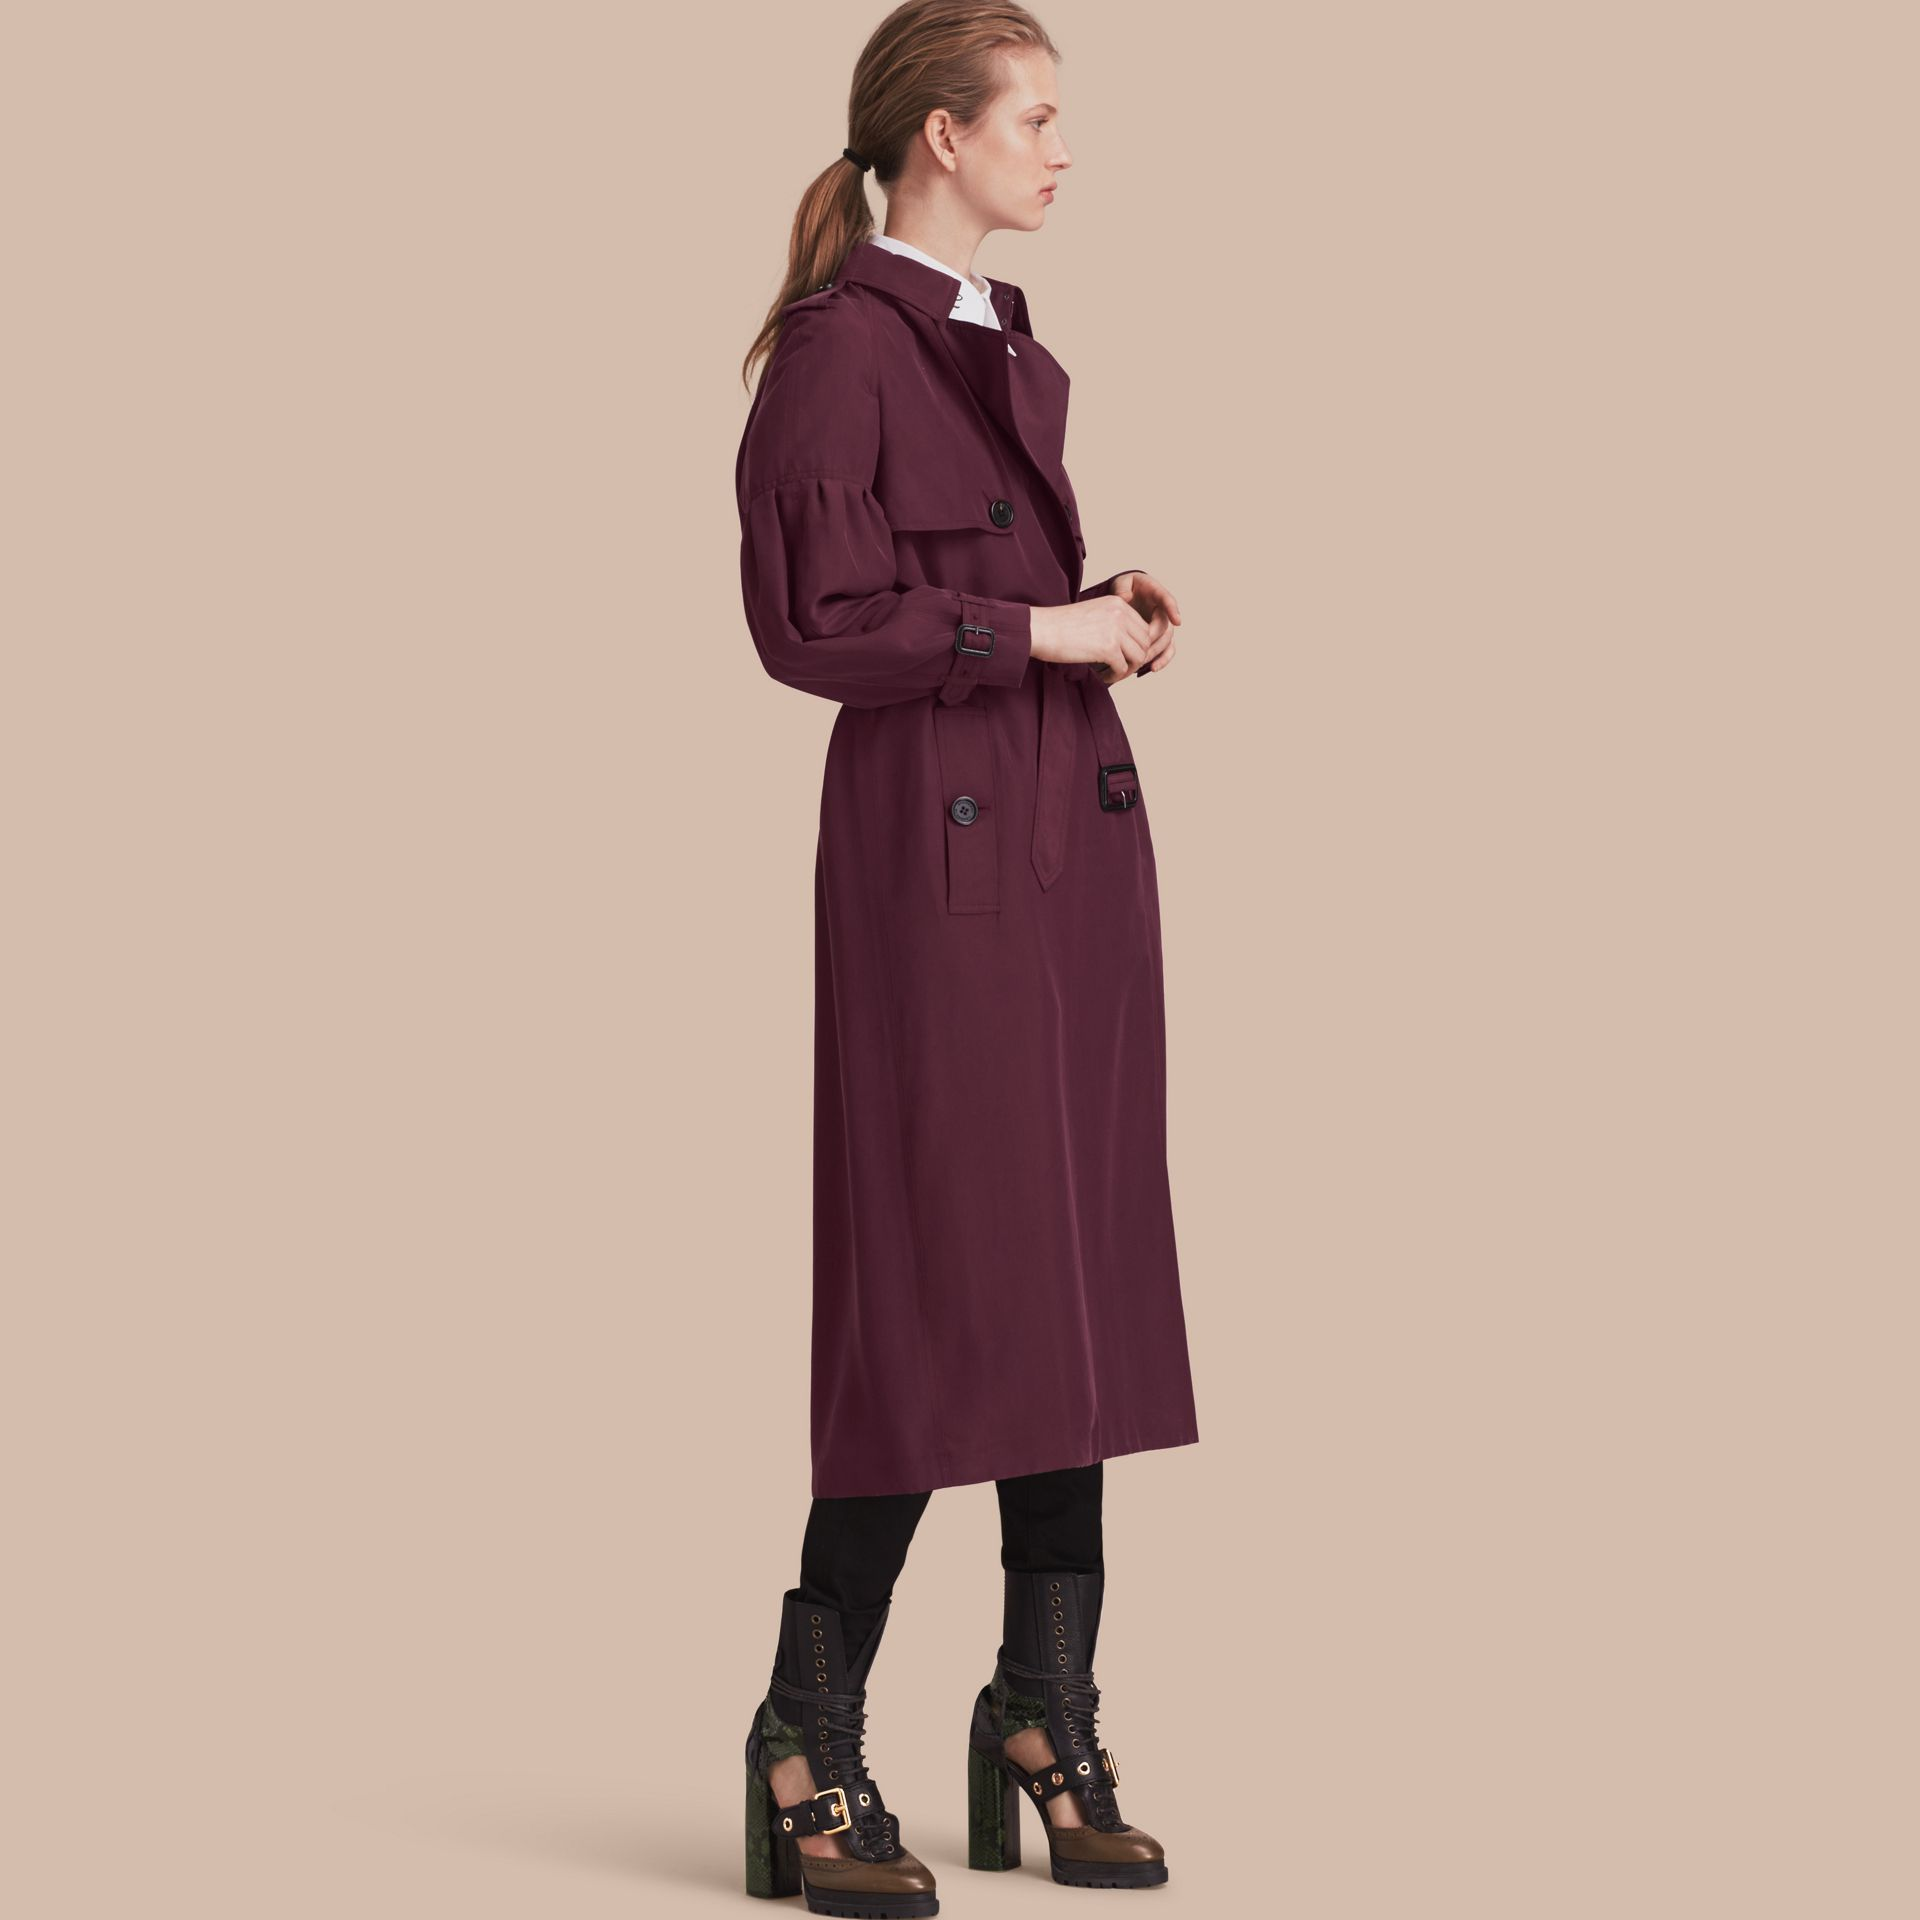 Burgundy Oversize Silk Trench Coat with Puff Sleeves Burgundy - gallery image 1